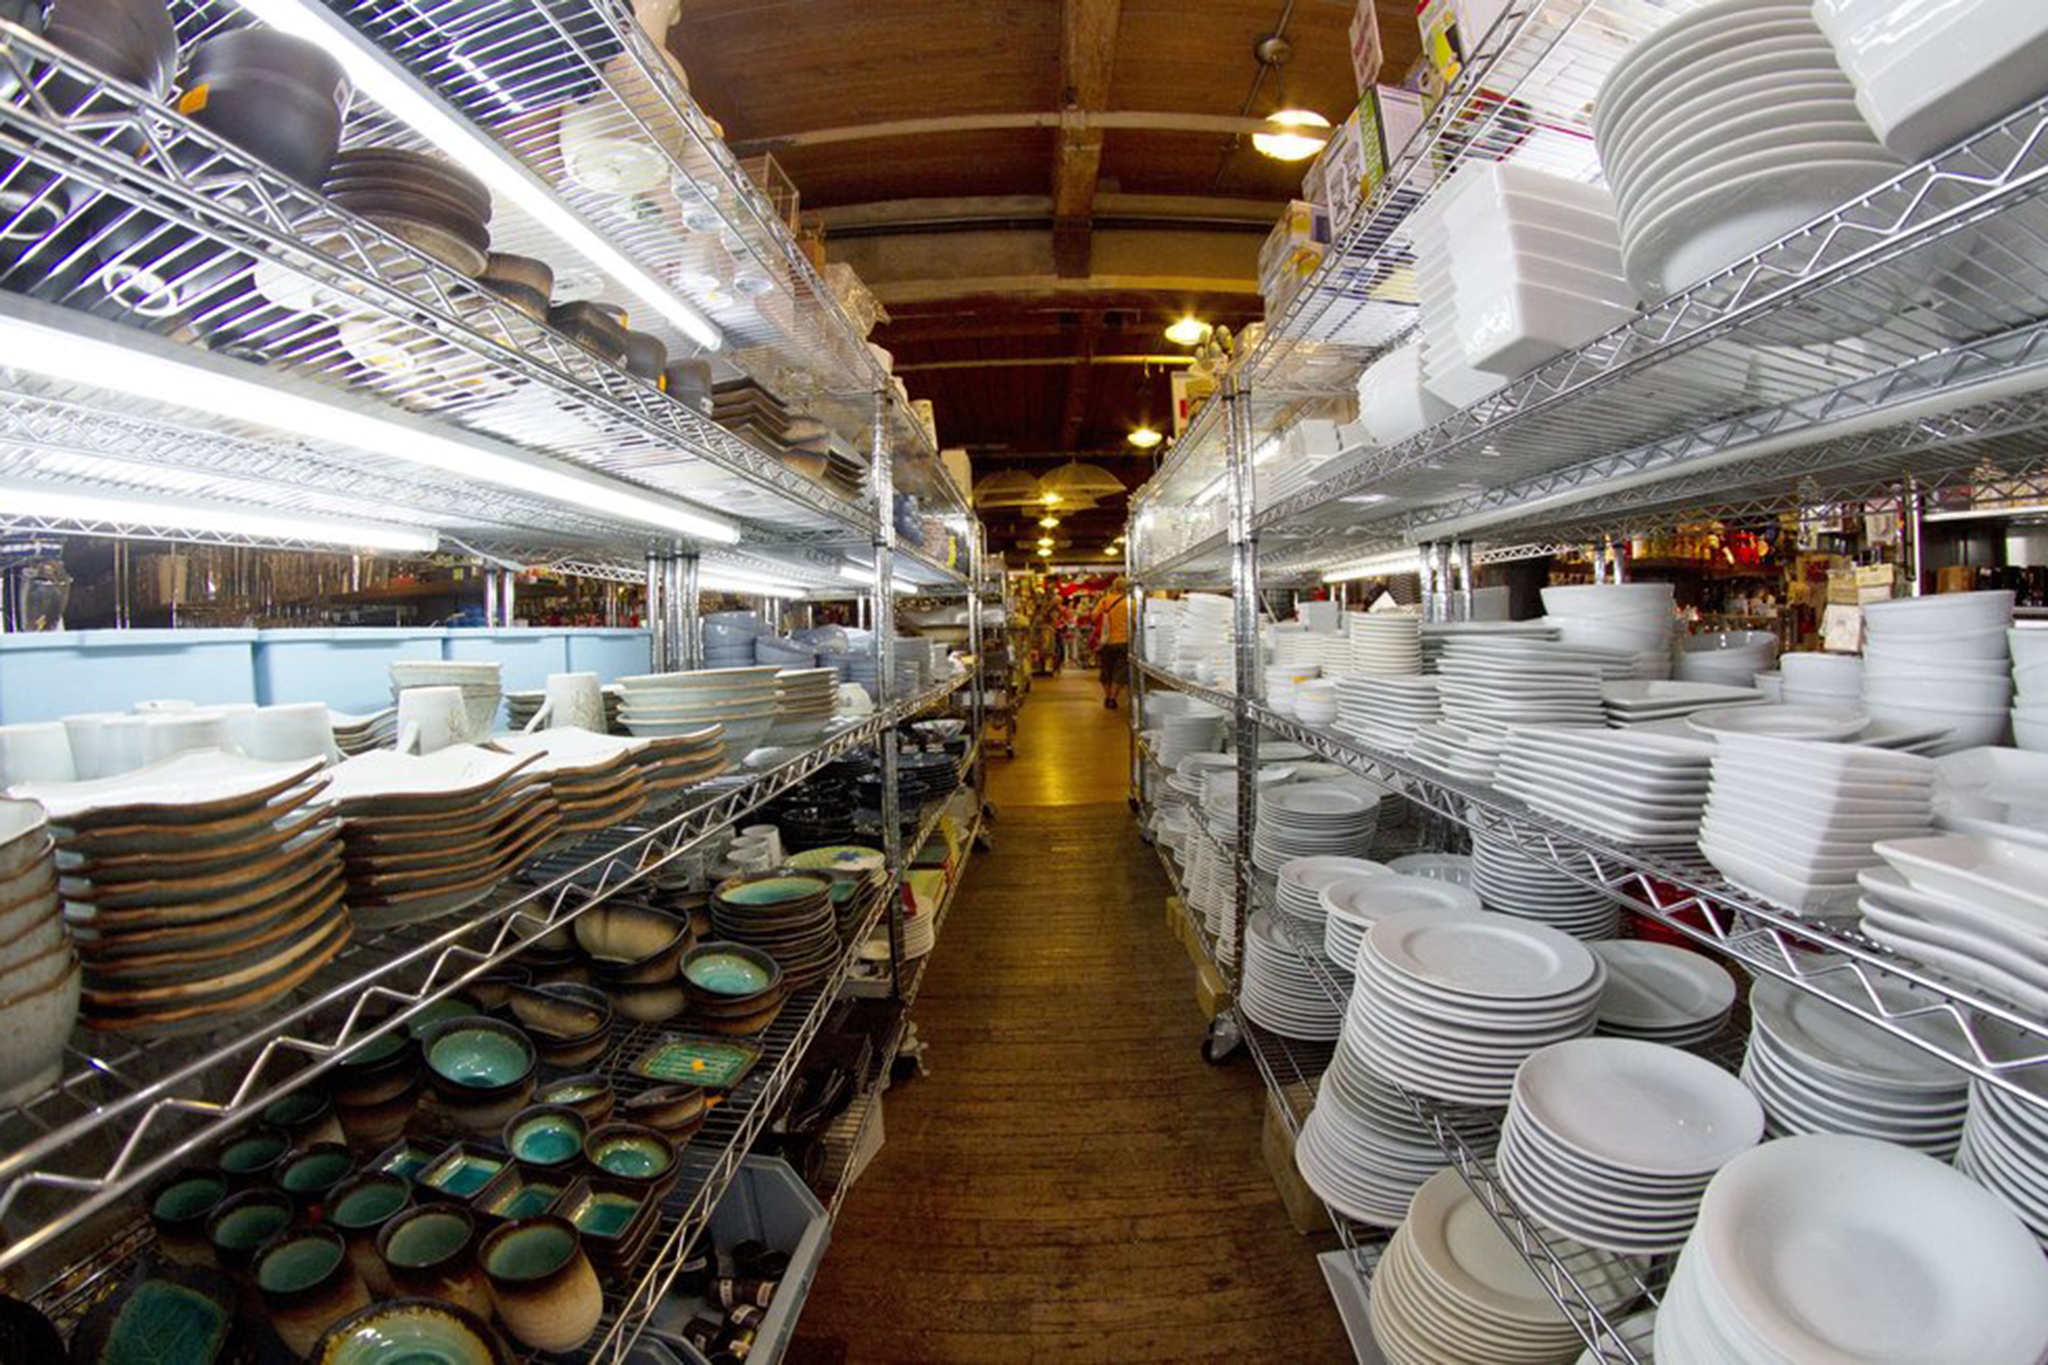 Merveilleux Bowery Kitchen Supply